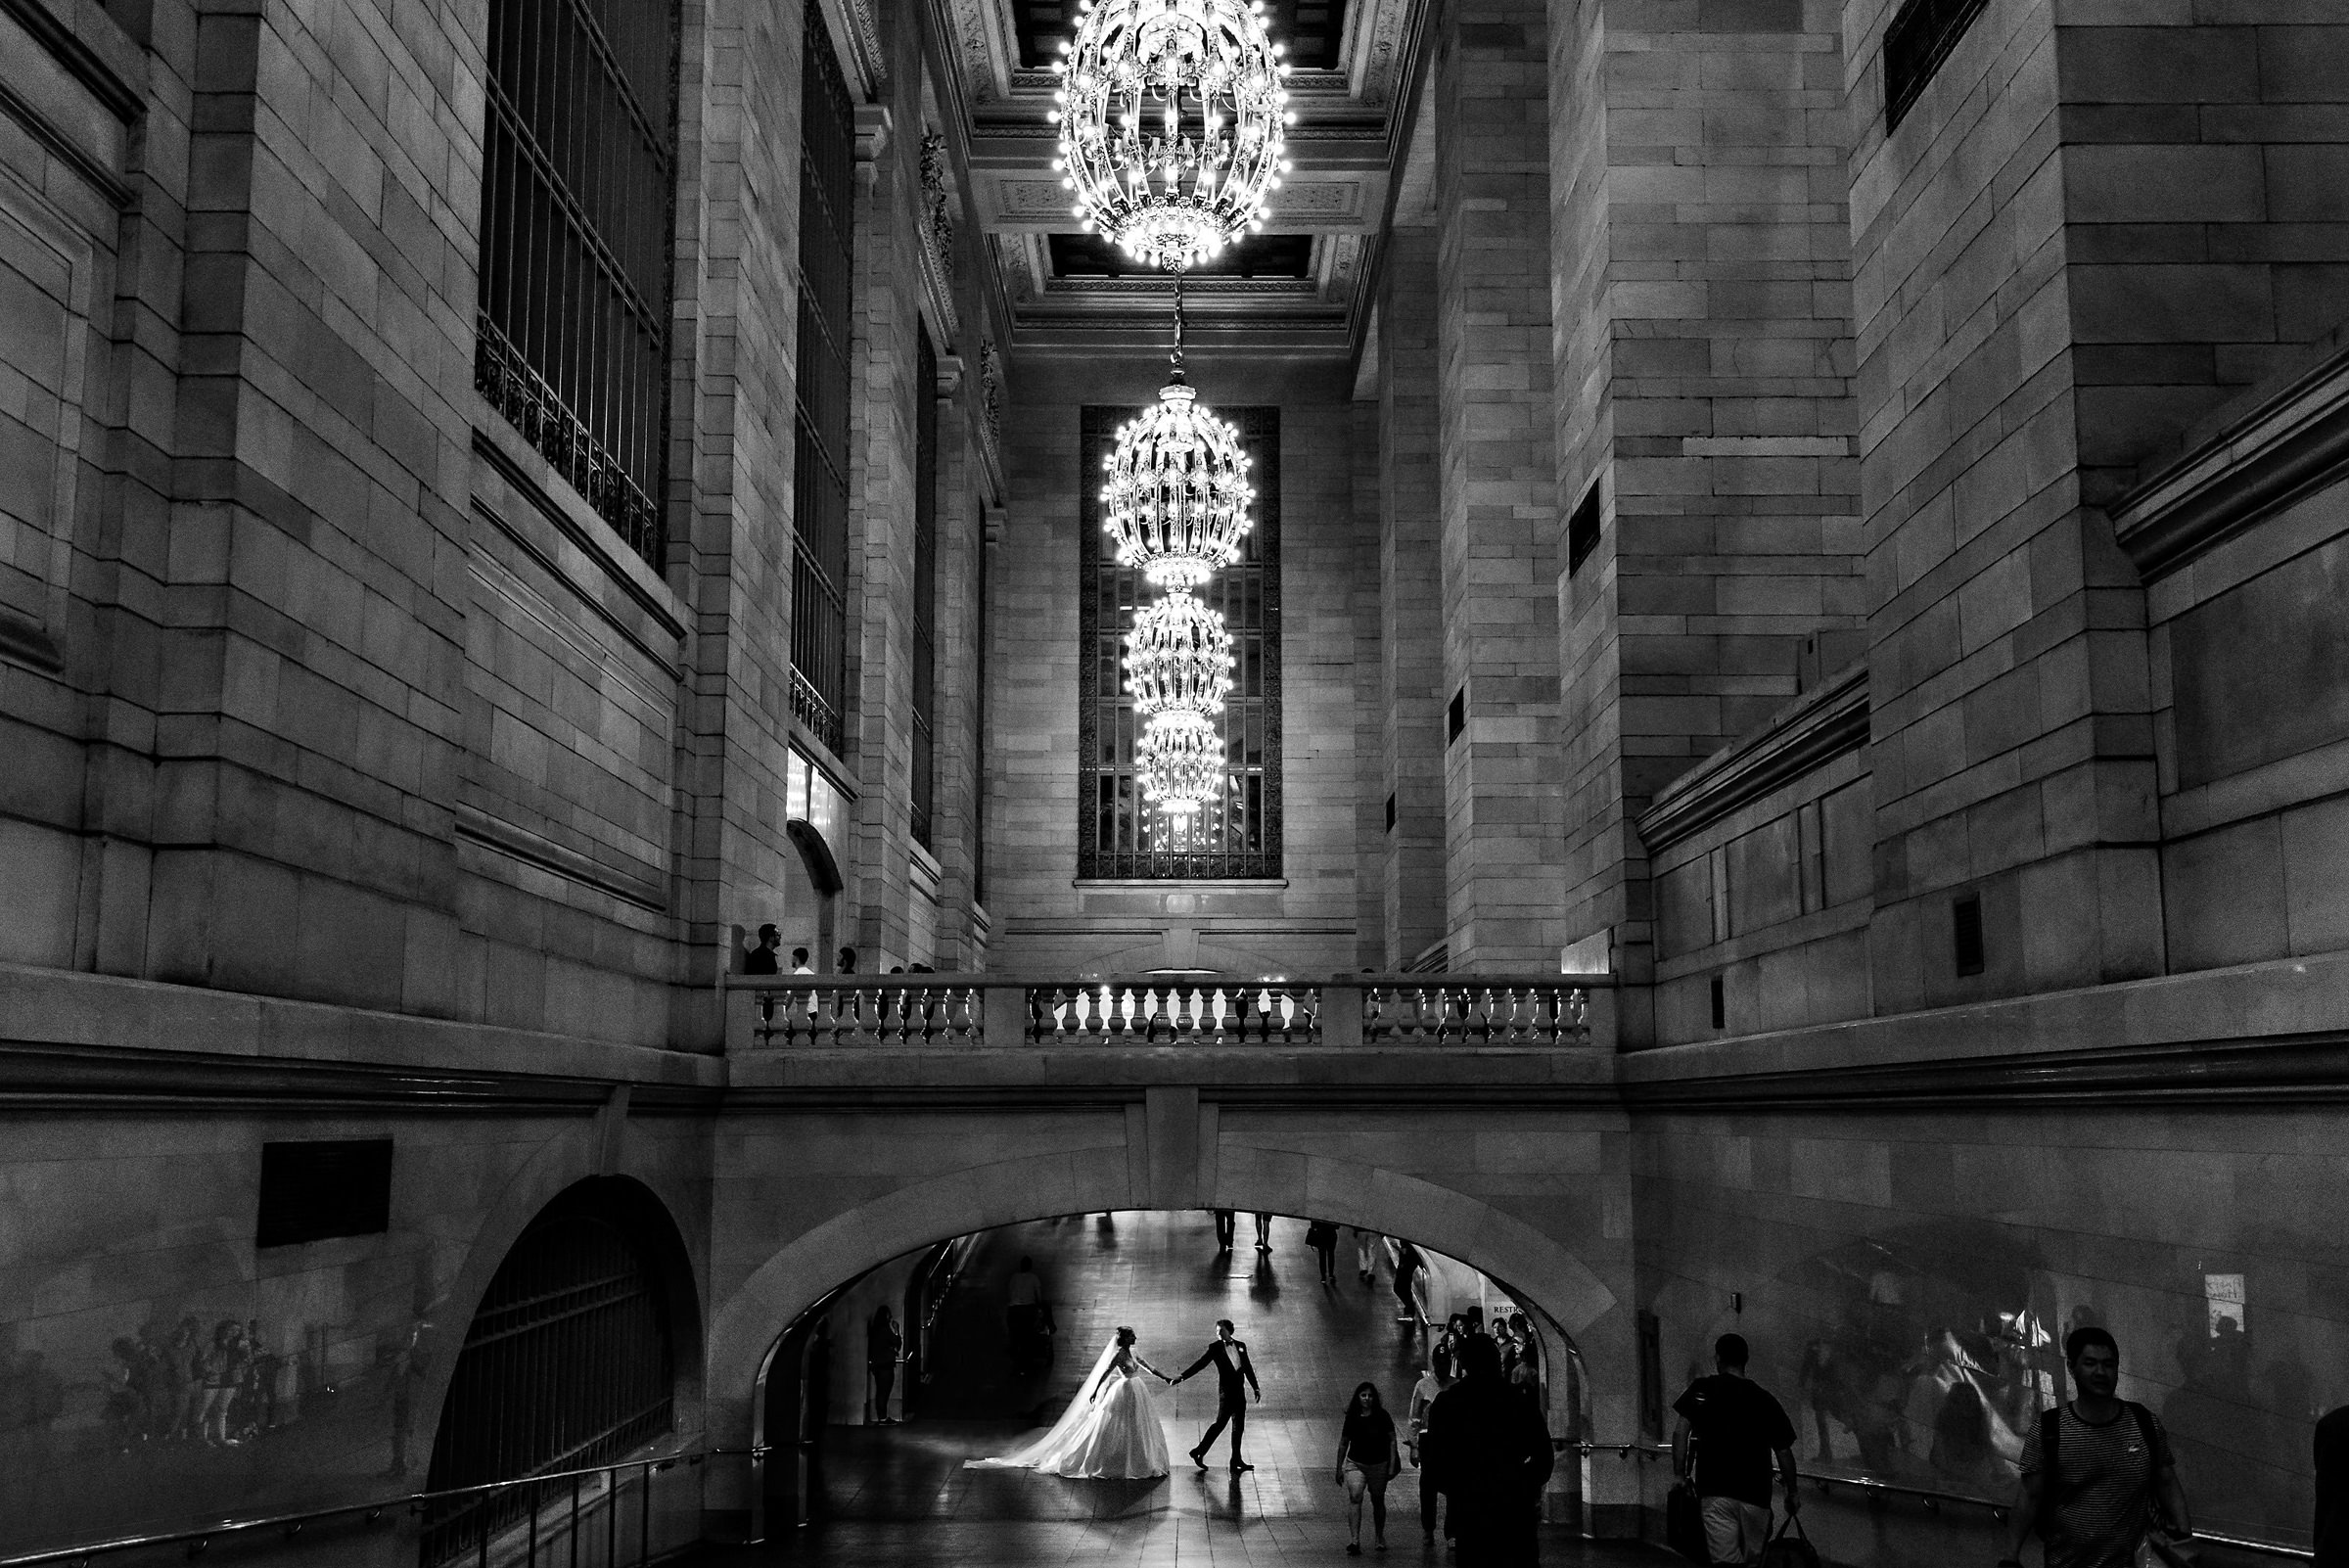 Groom leads bride across hallway lit by chandeliers - photo by Moore Photography